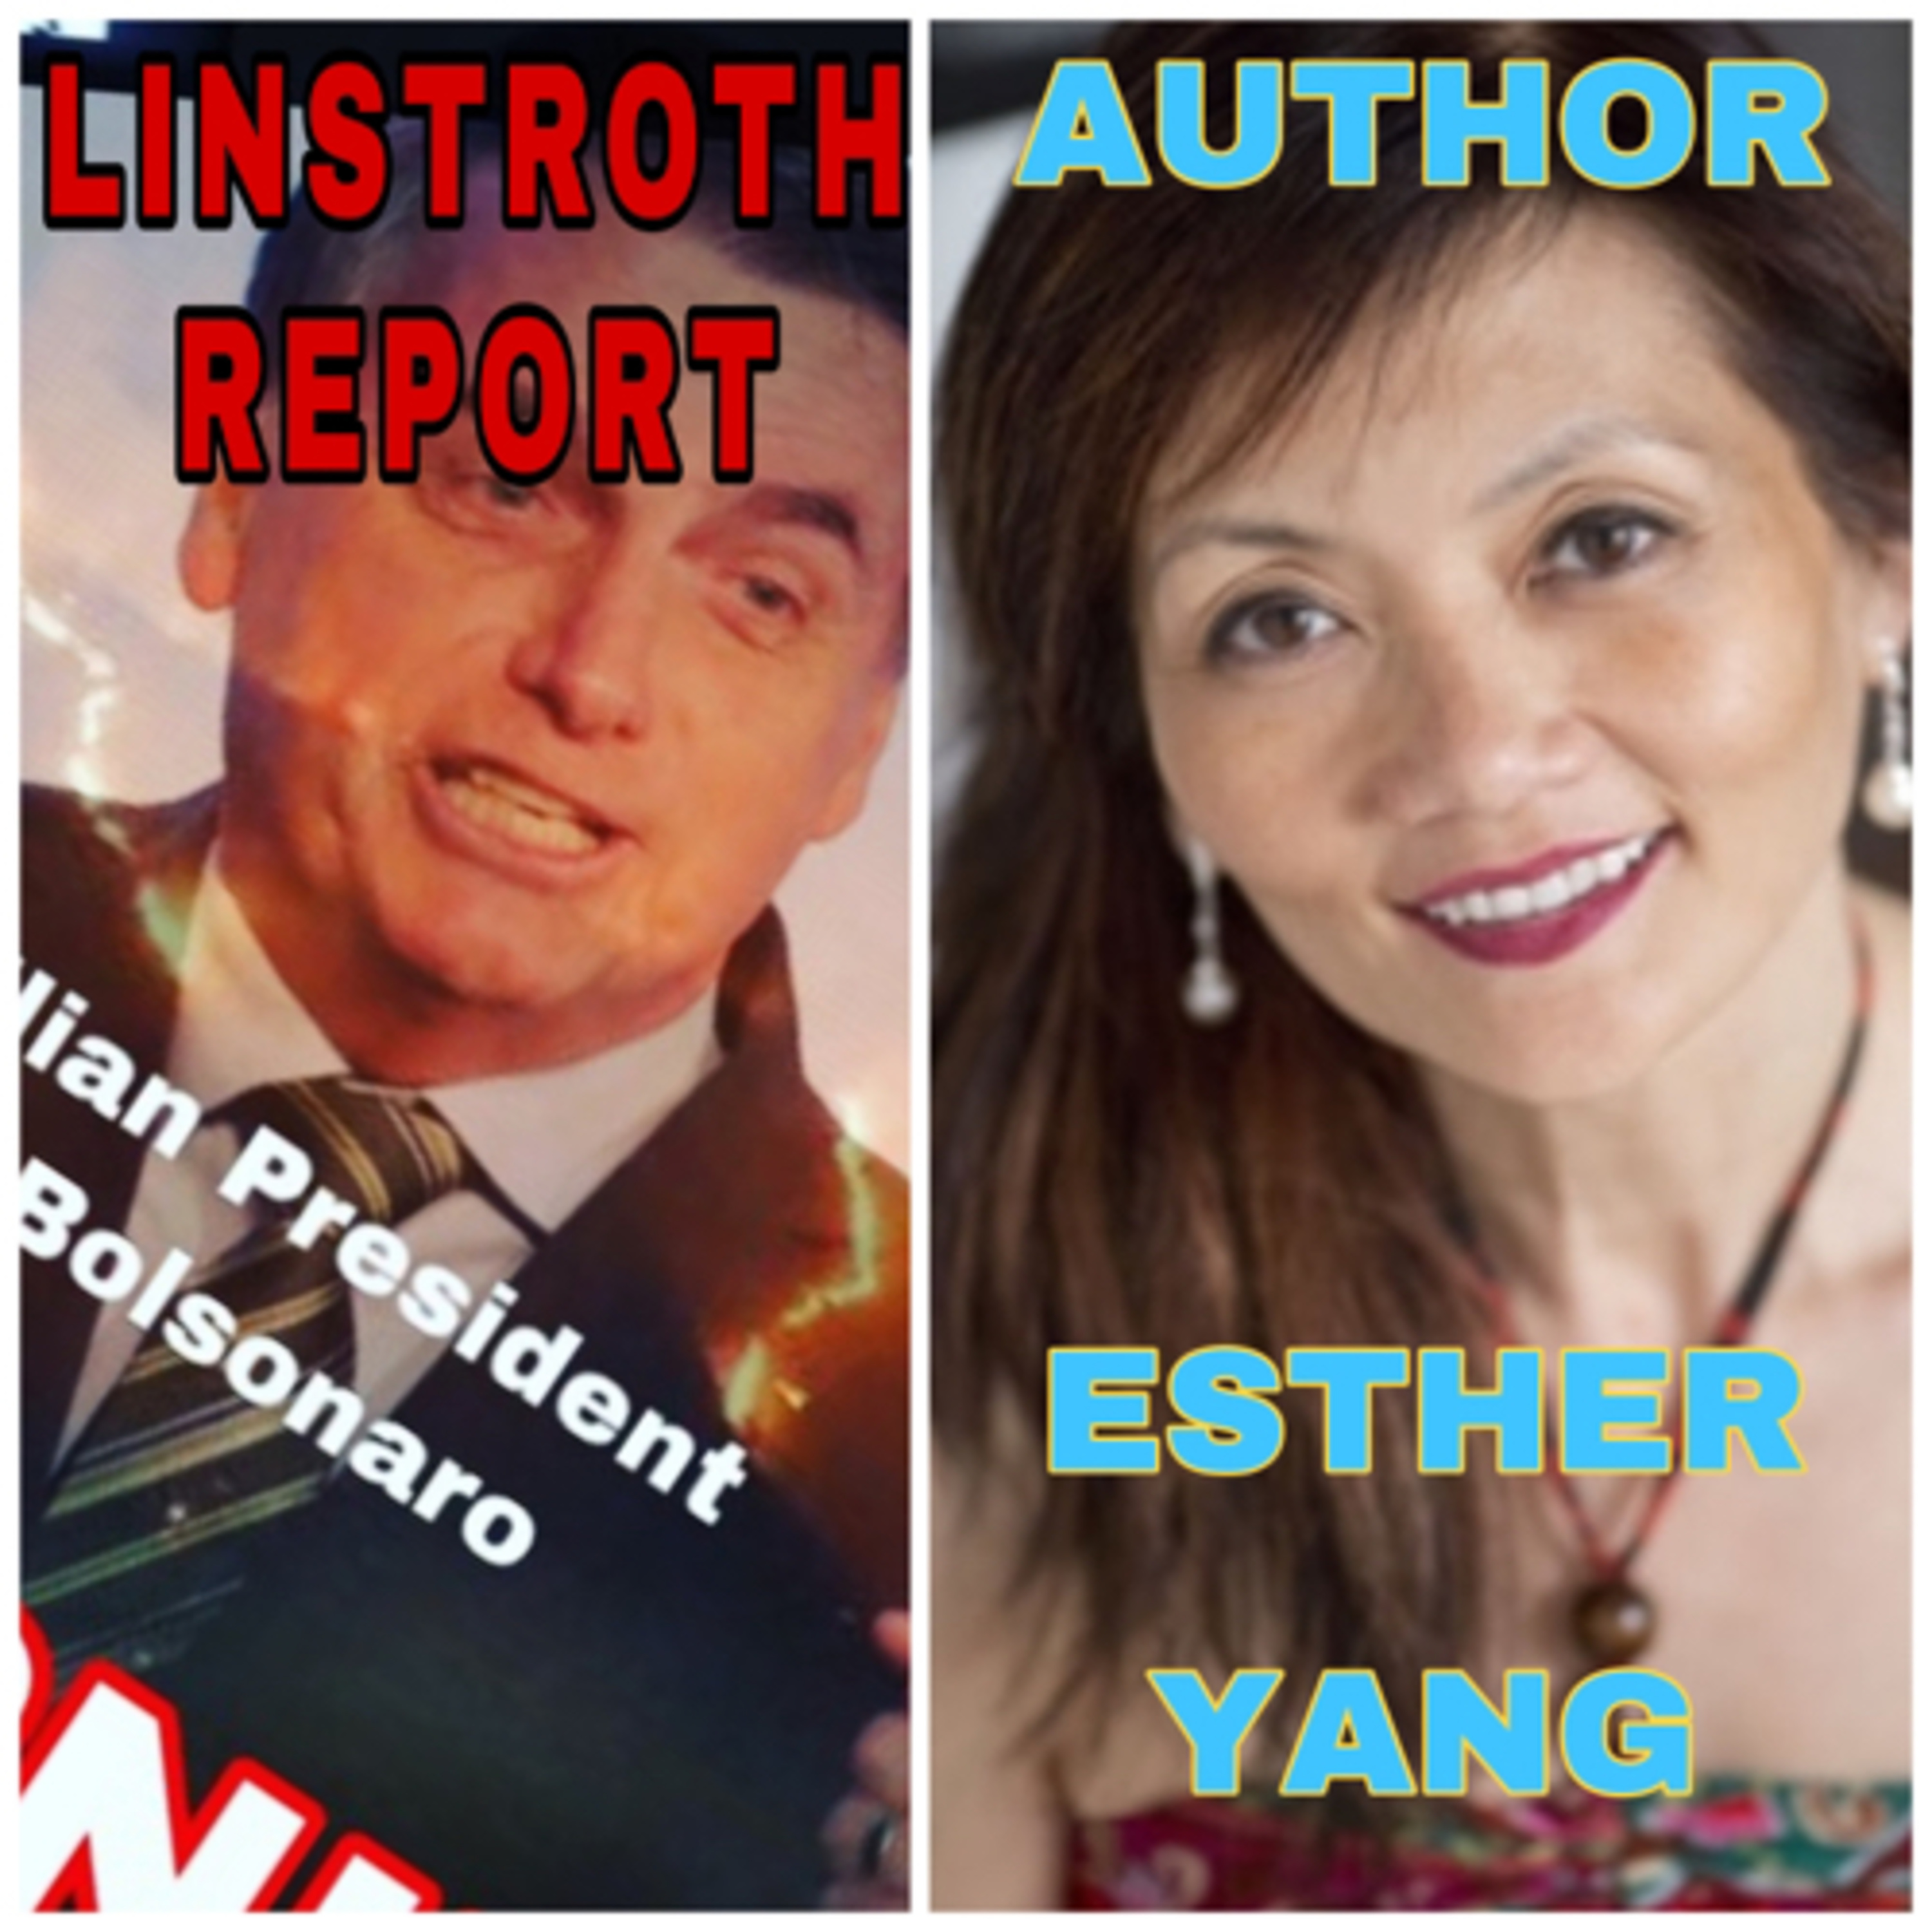 Linstroth Report: Amazon Burning!!! And NYC based author: Esther Yang